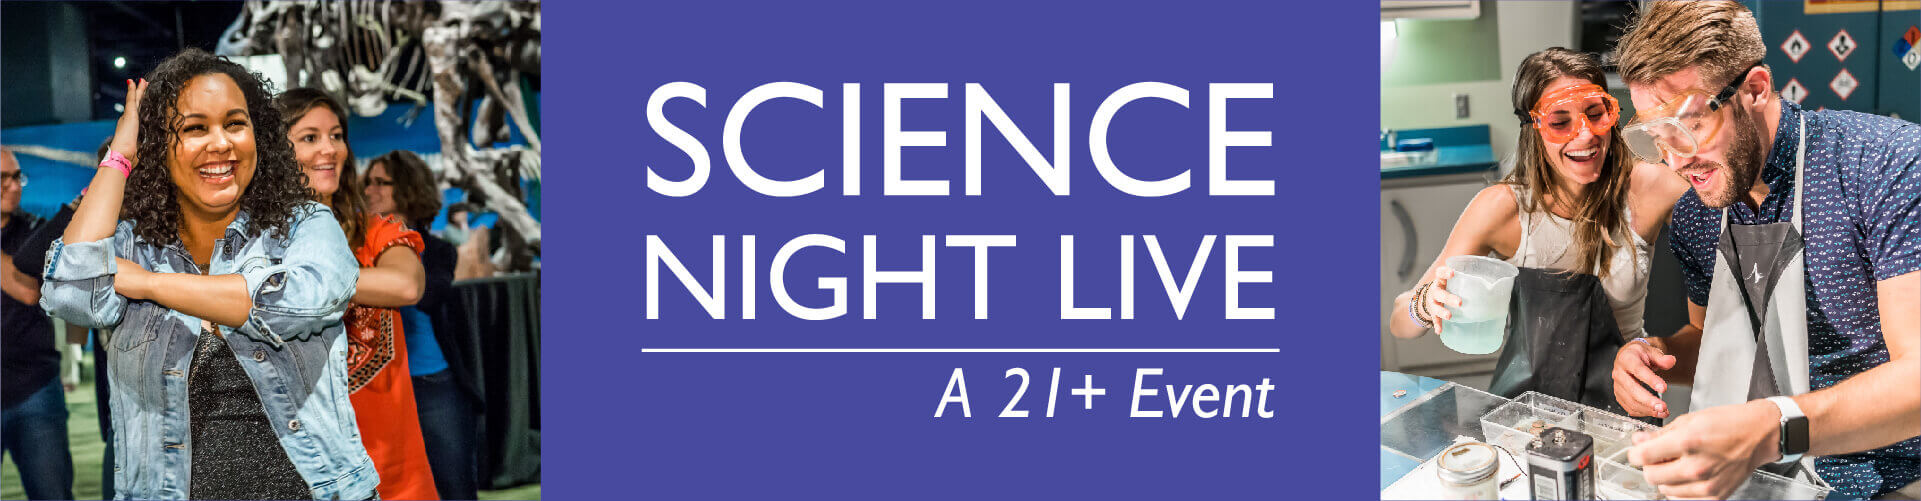 Science Night Live Adult Night A 21+ Event